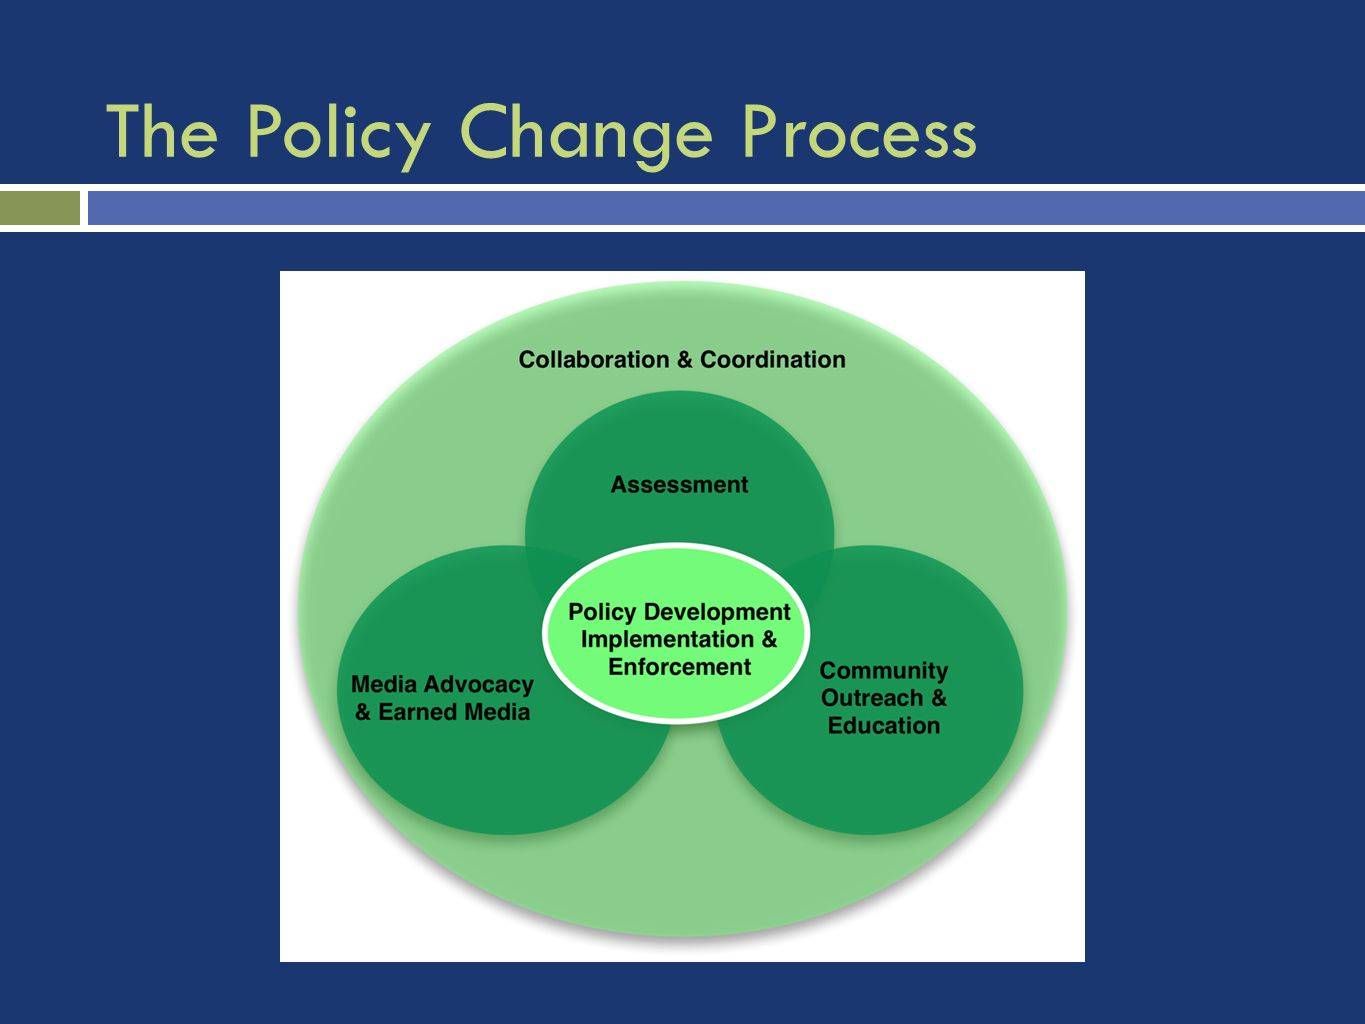 The Policy Change Process